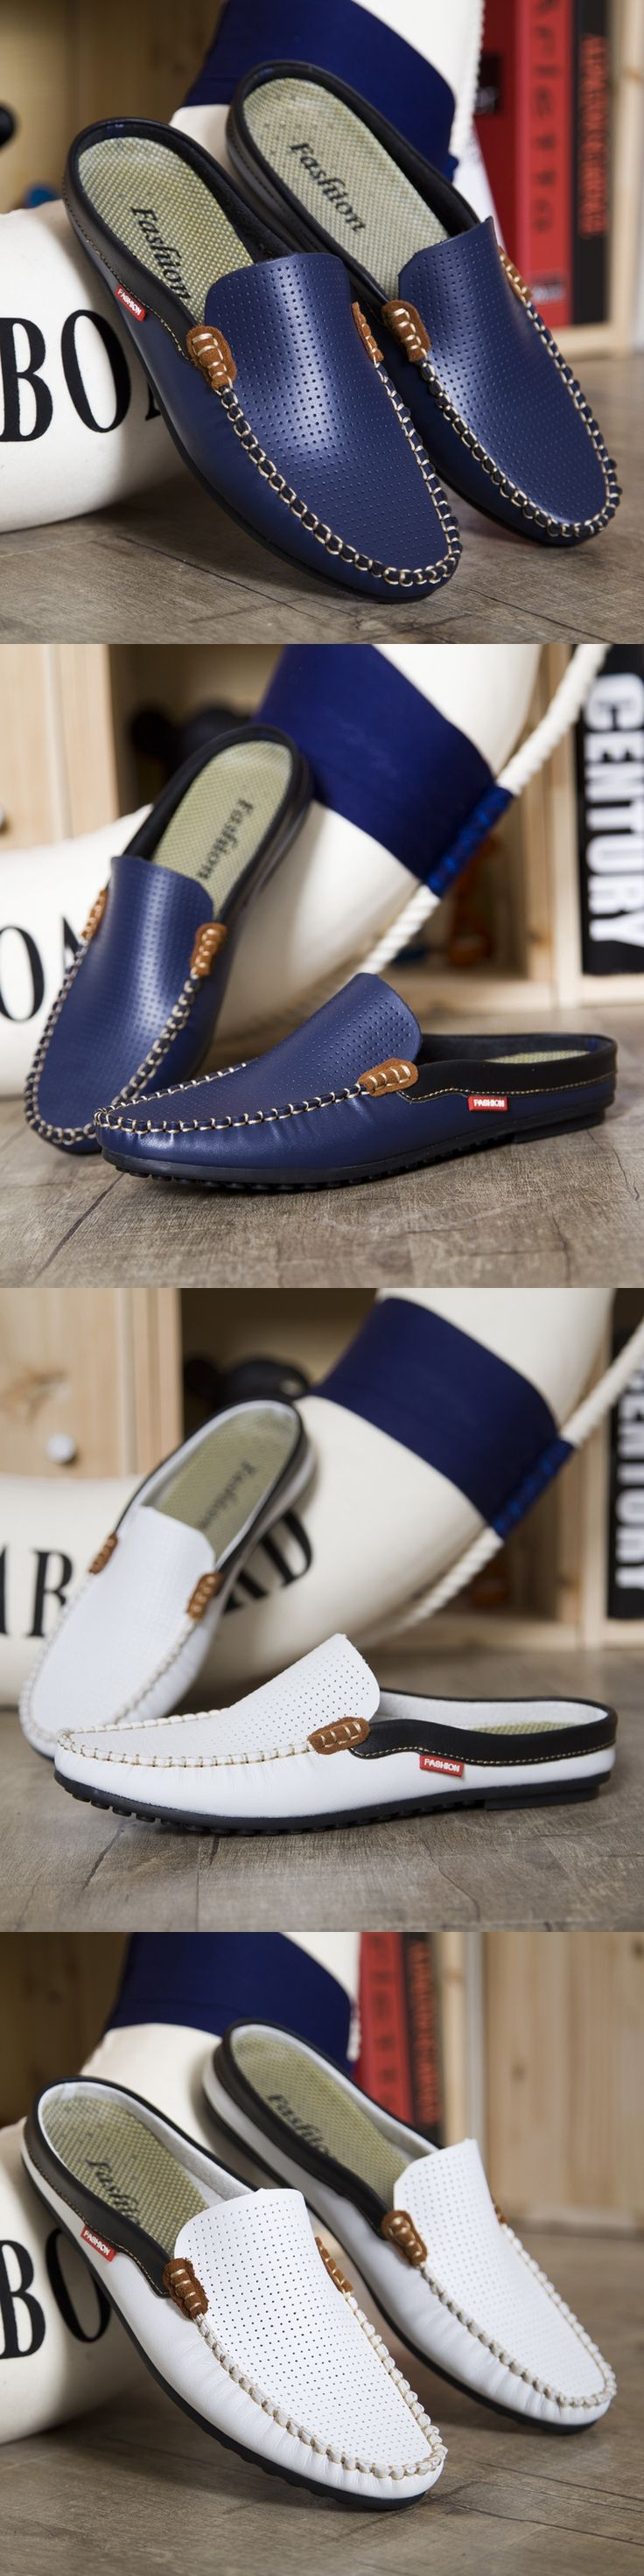 US $19 Men loafers Luxury Brand Shoes Summer men casual shoes Backless Loafers Open Backs Shoes Breathable Leather Men Driving Shoes